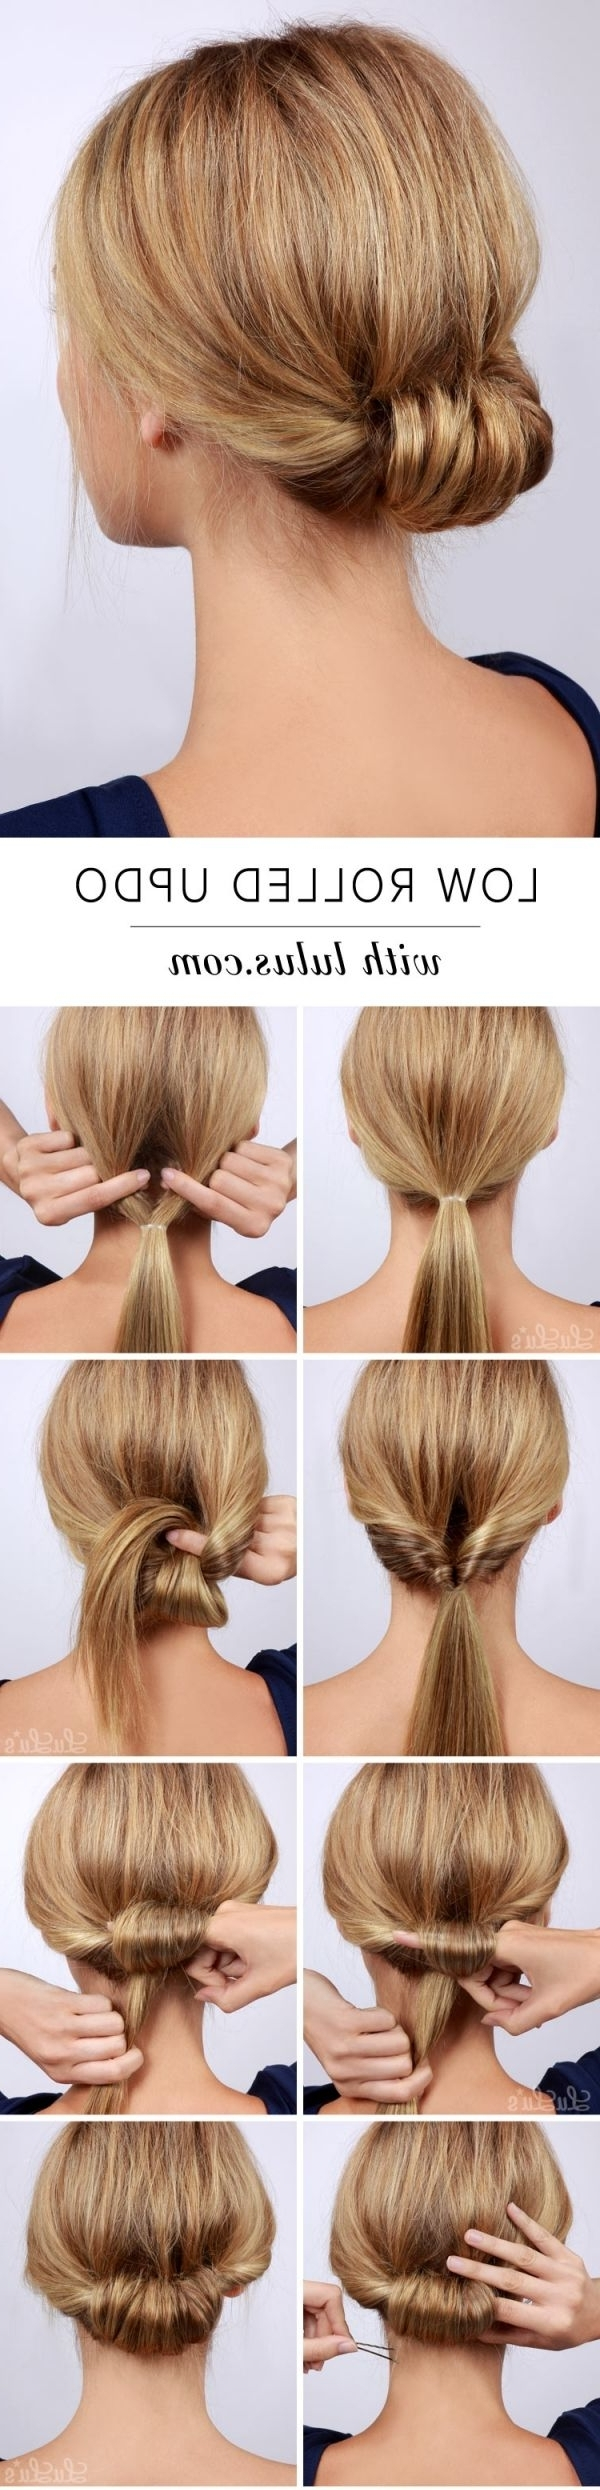 Tame Your Tresses With These Gorgeous Hairstyles For Thick Hair Within Easy Updo Hairstyles For Long Thick Hair (View 13 of 15)